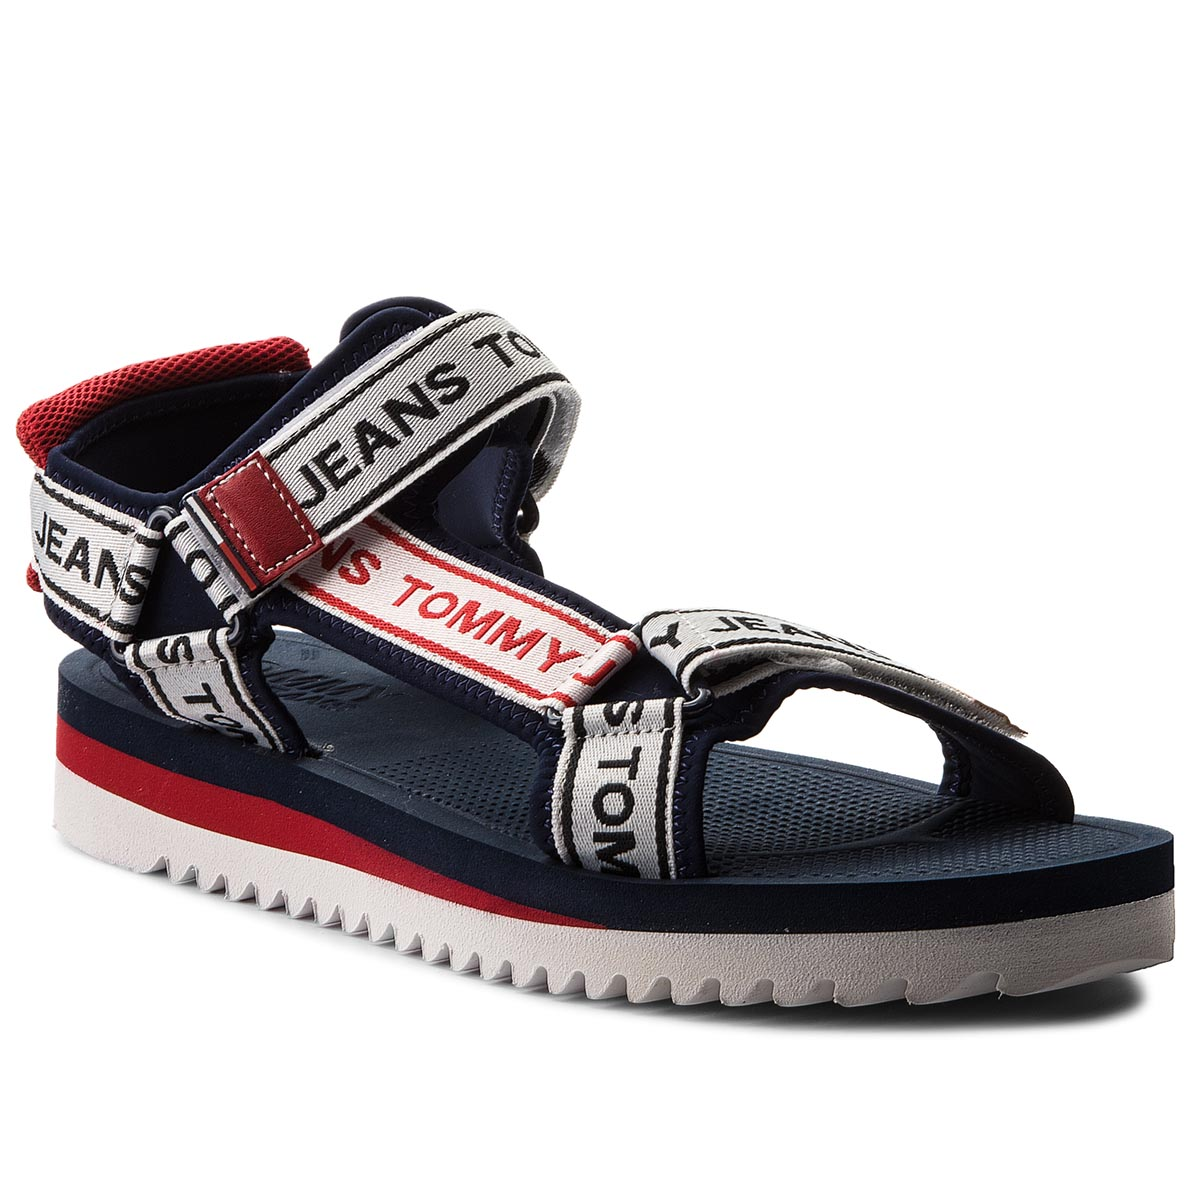 Sandale TOMMY JEANS - Mens Tommy Jeans Technical Sandal EM0EM00160 Midnight 403